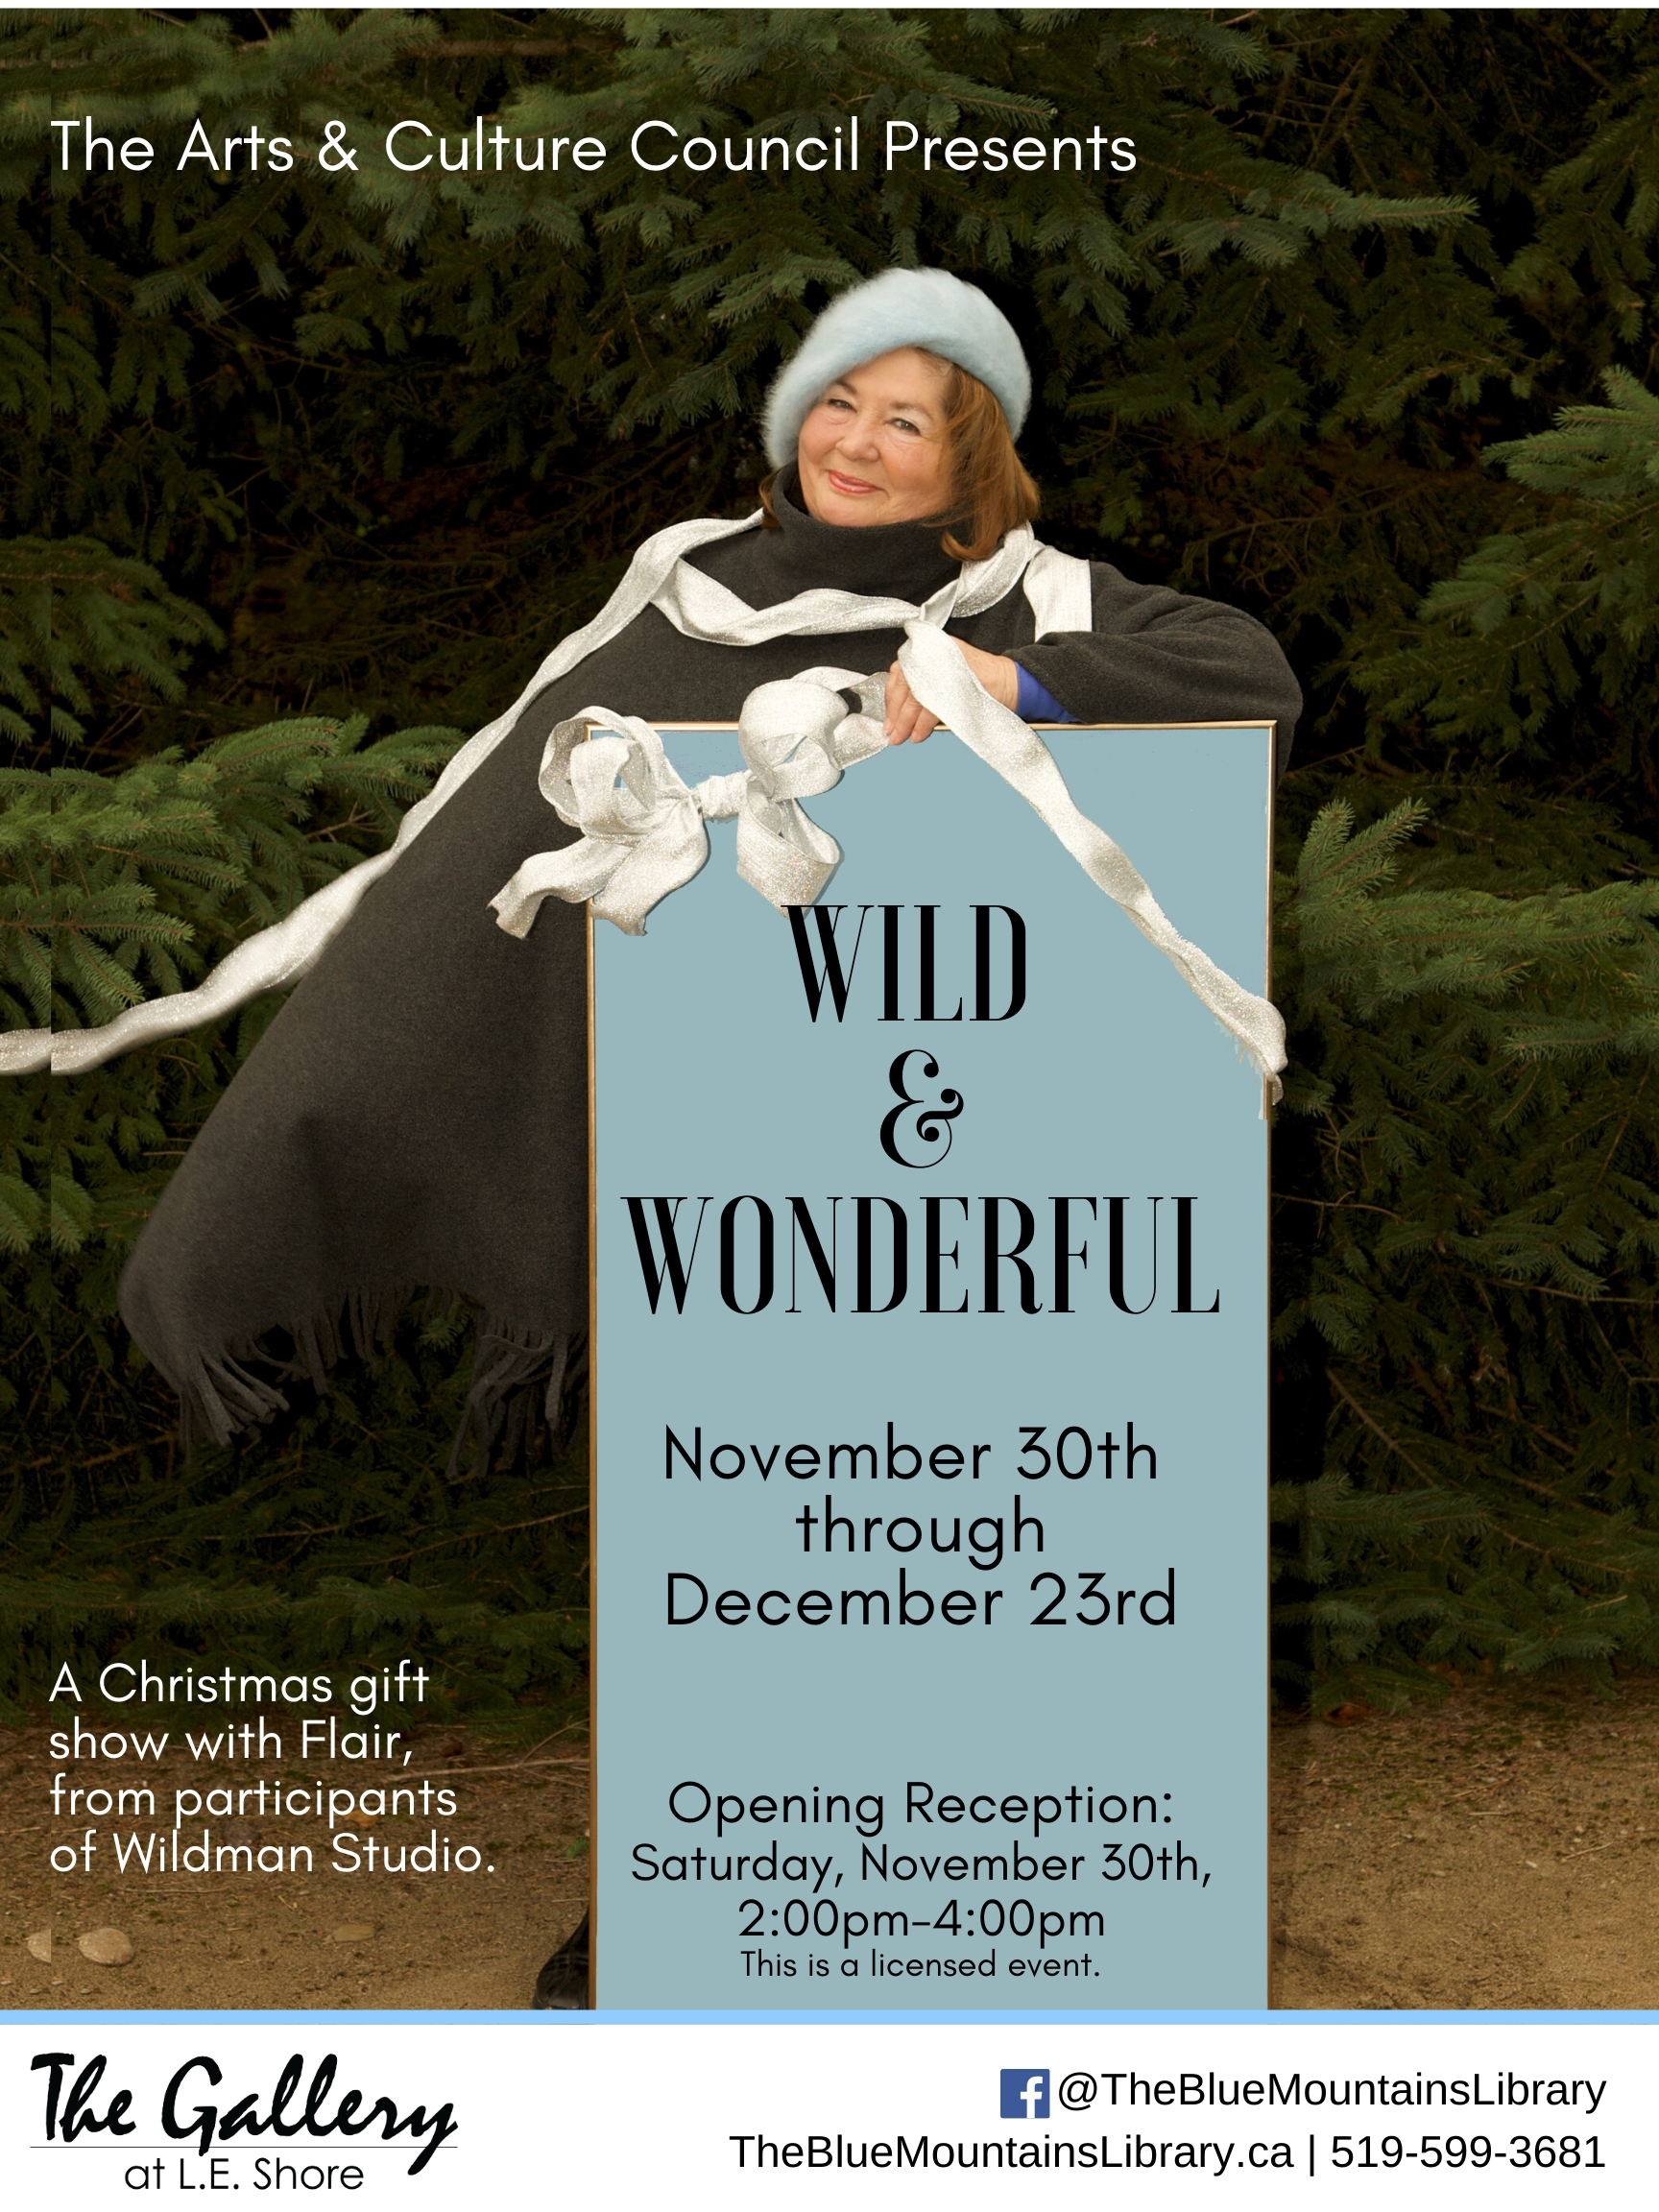 Wild & Wonderful - A Christmas Gift Show with Flair